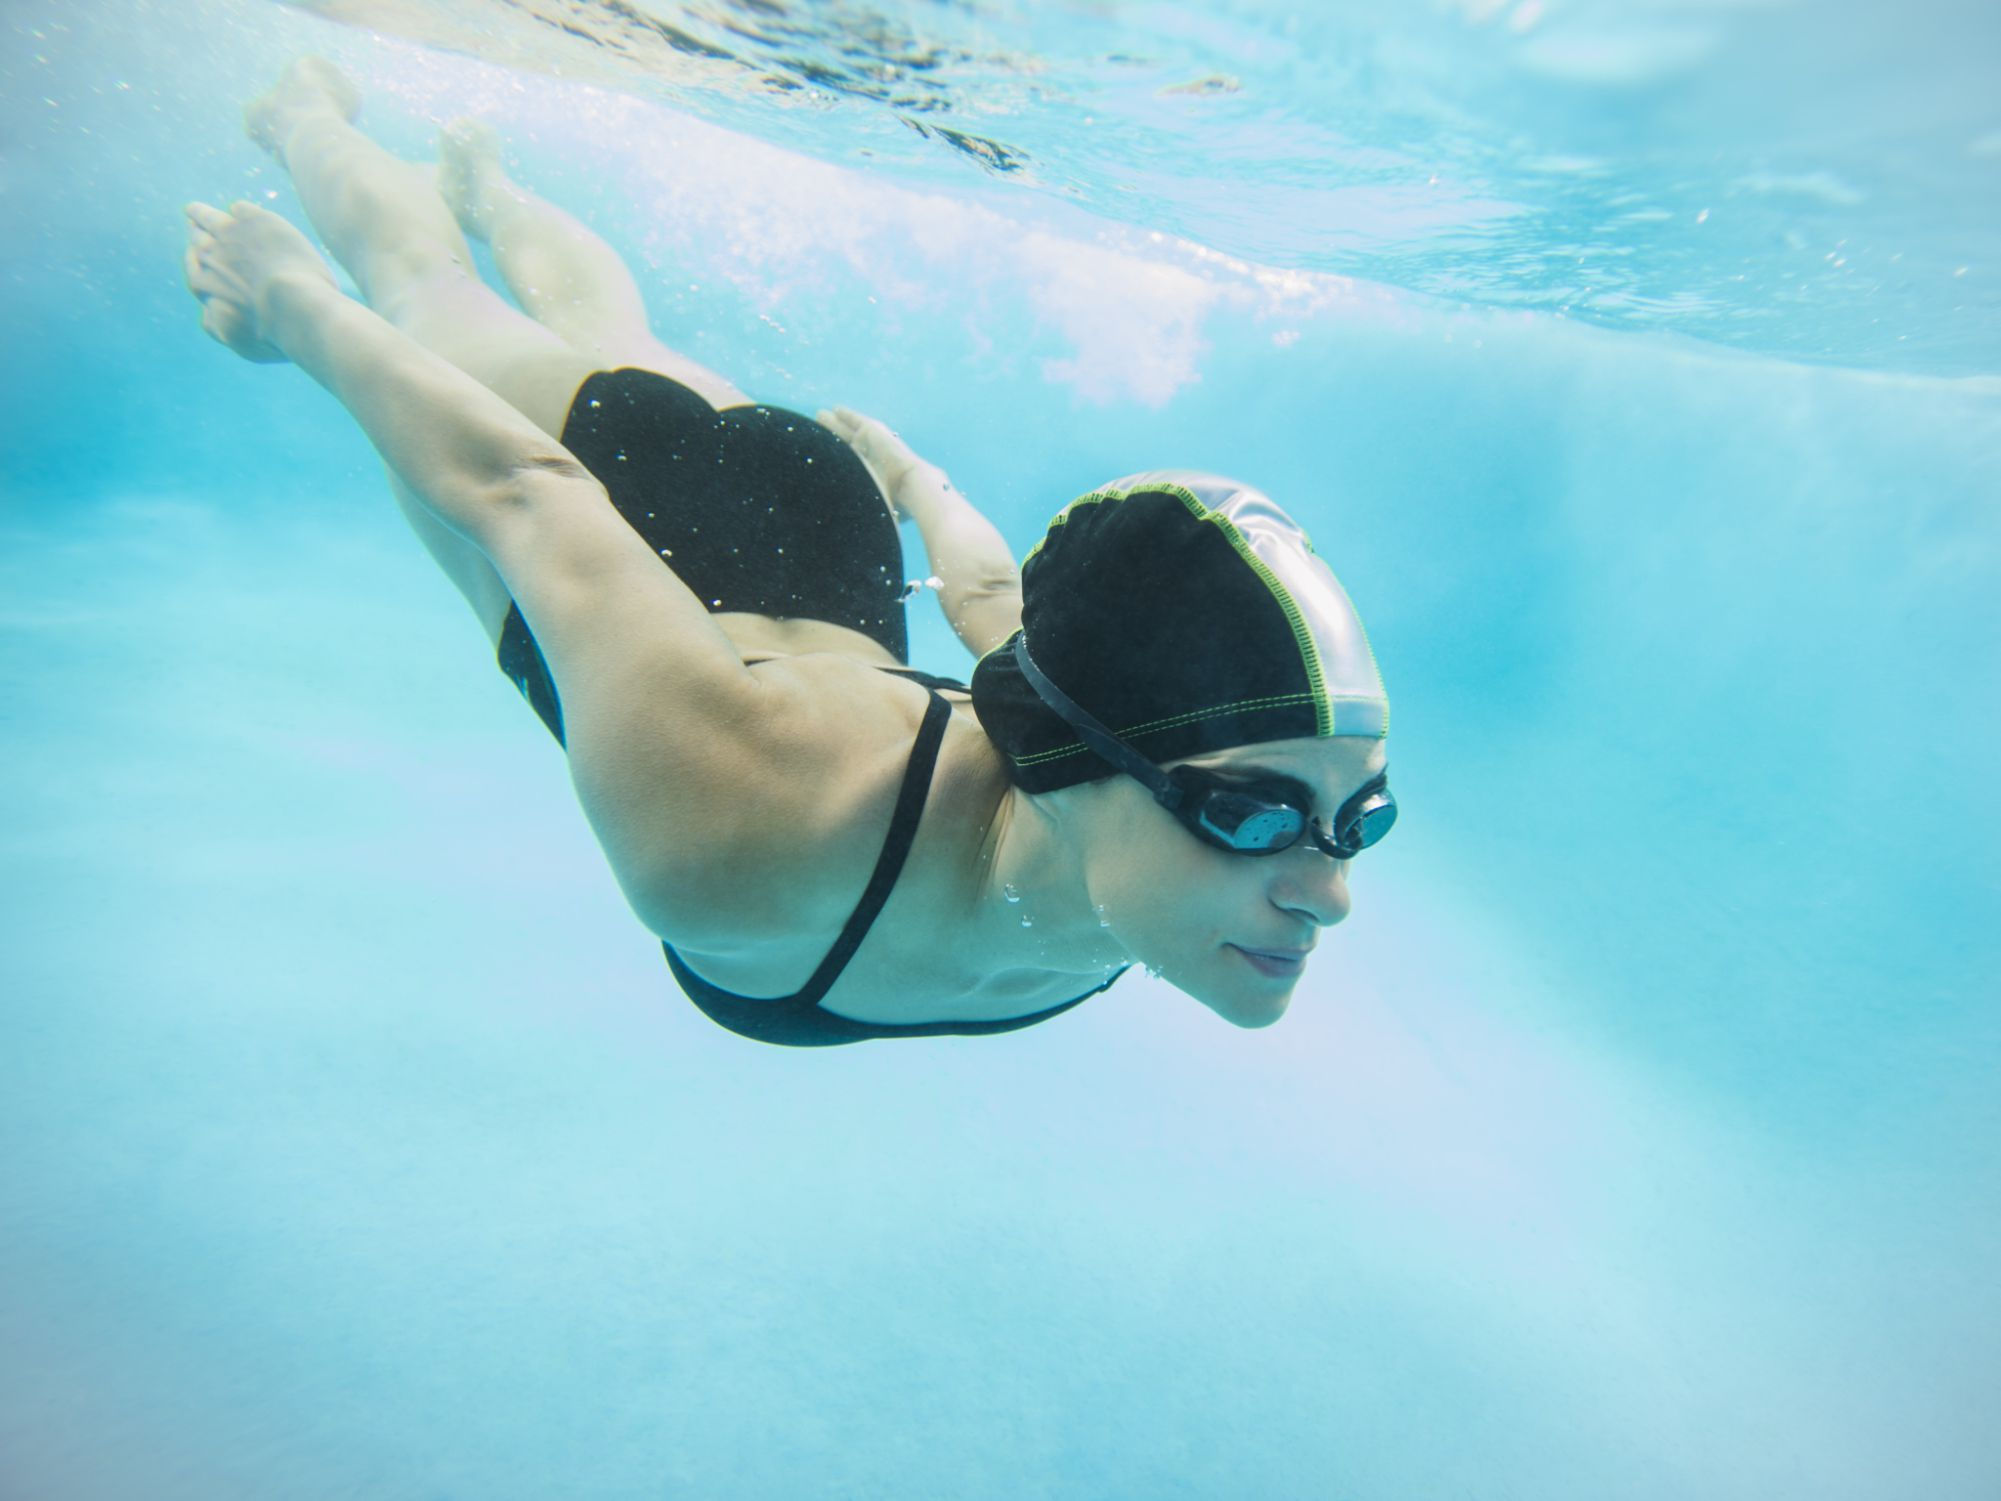 Underwater view of woman diving and swimming in a pool